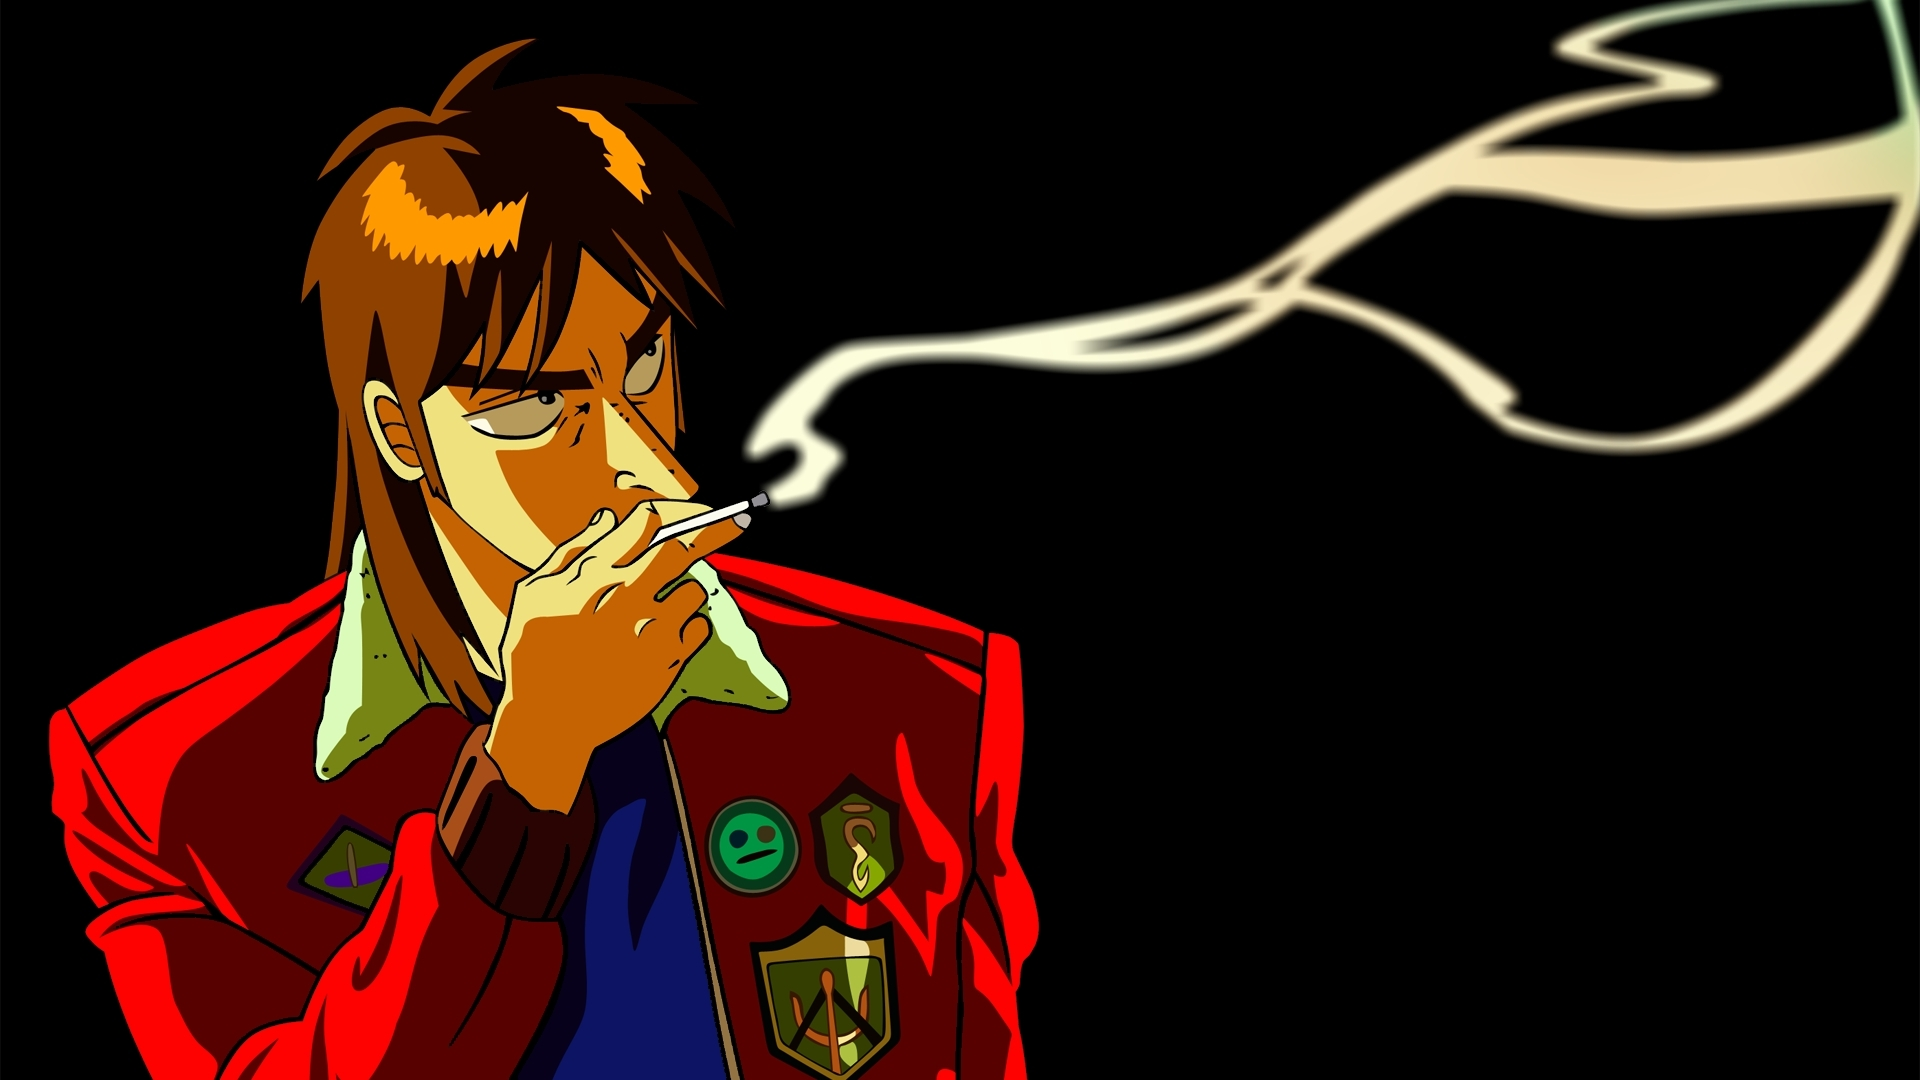 Kaiji   Kaiji Wallpaper 1920x1080 62691 1920x1080